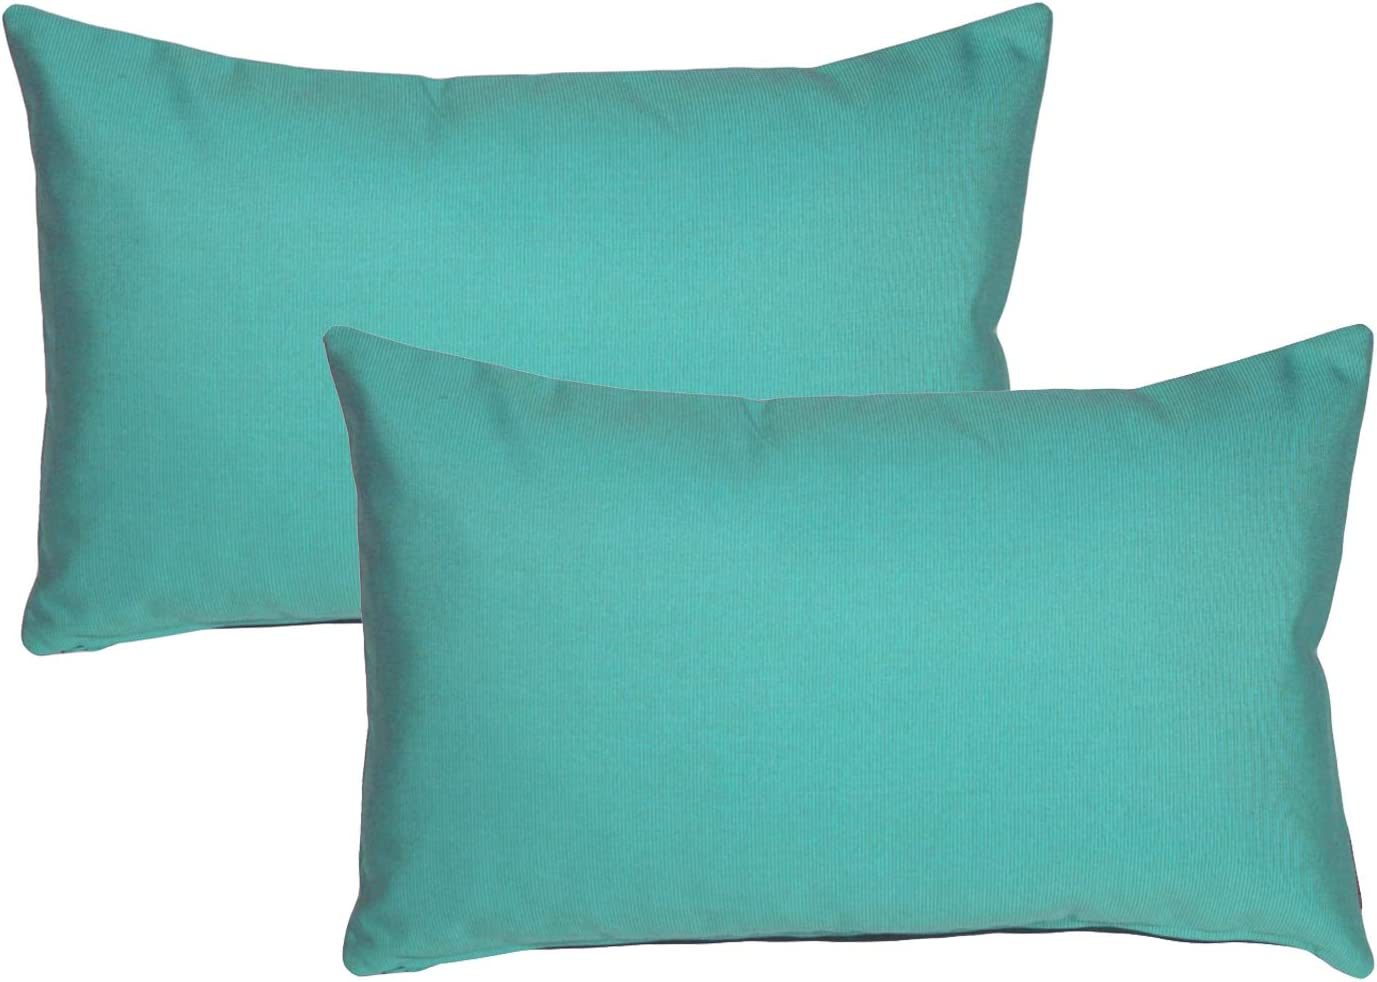 Pillow Décor Sunbrella Outdoor Pillow Aruba Turquoise 12 X19 Set Of 2 Inserts Included Kitchen Dining